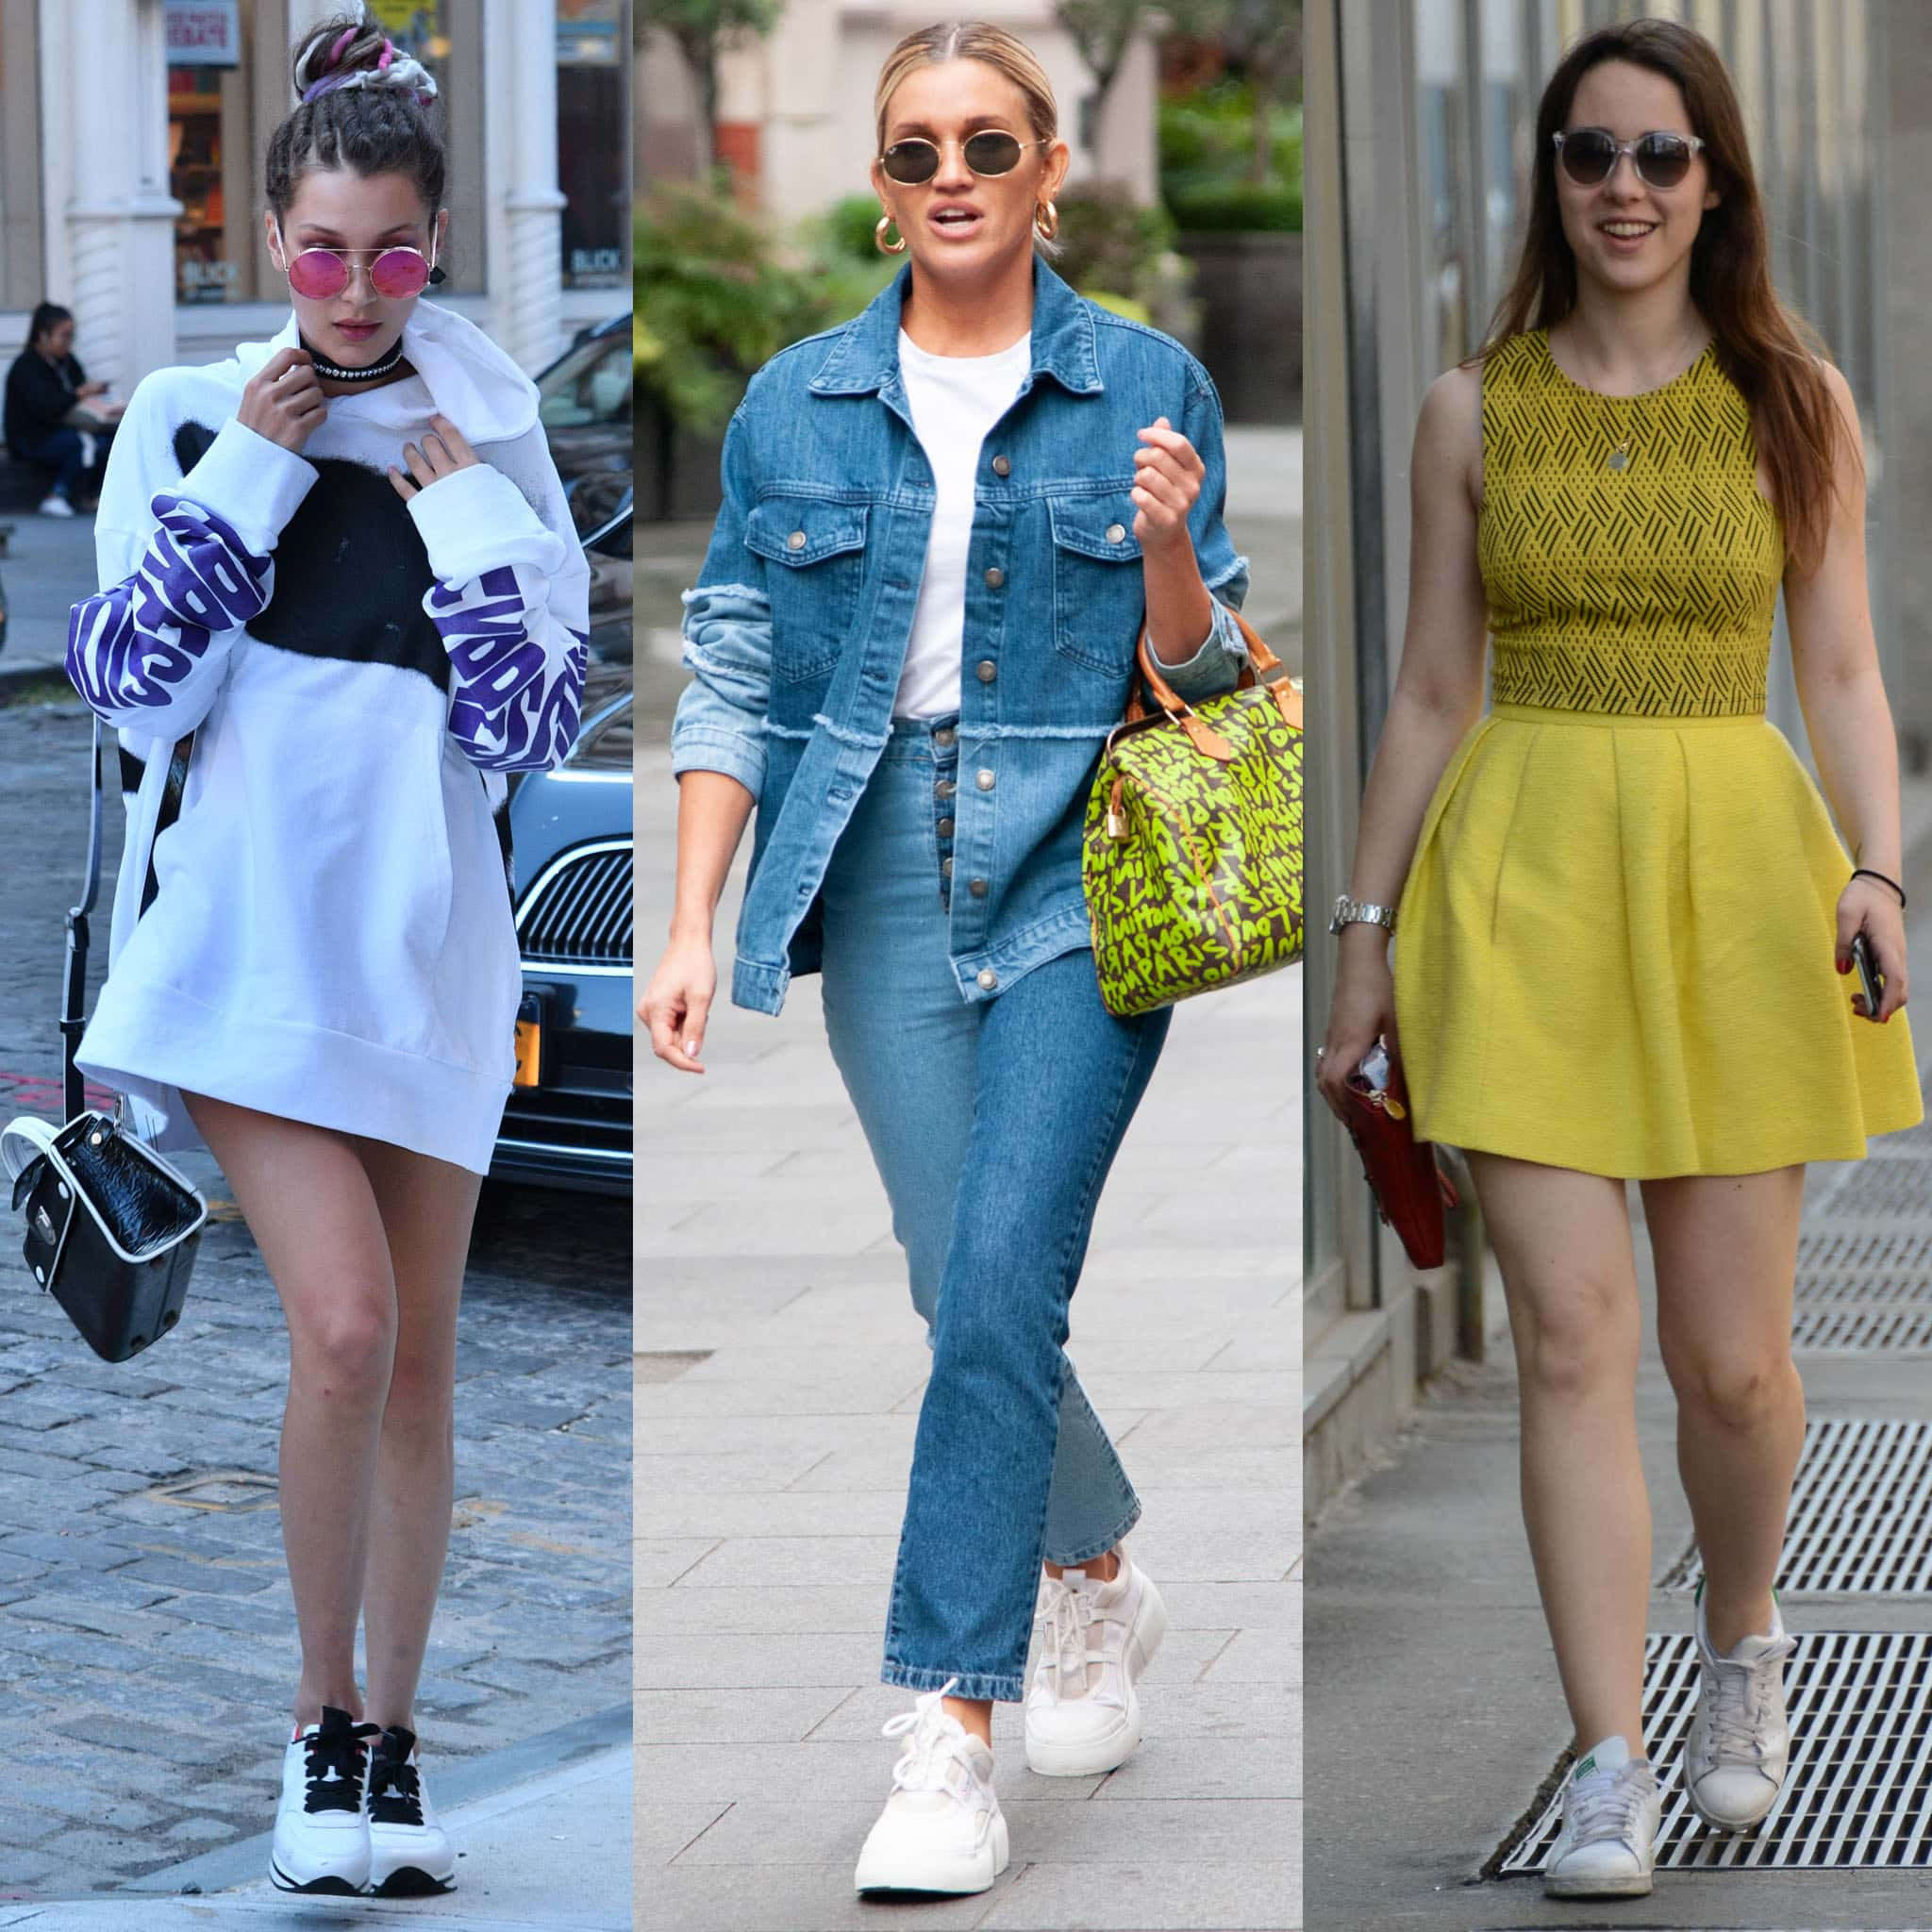 Bella Hadid, Ashley Roberts, and Aurora Ramazzotti show how to wear white sneakers in spring